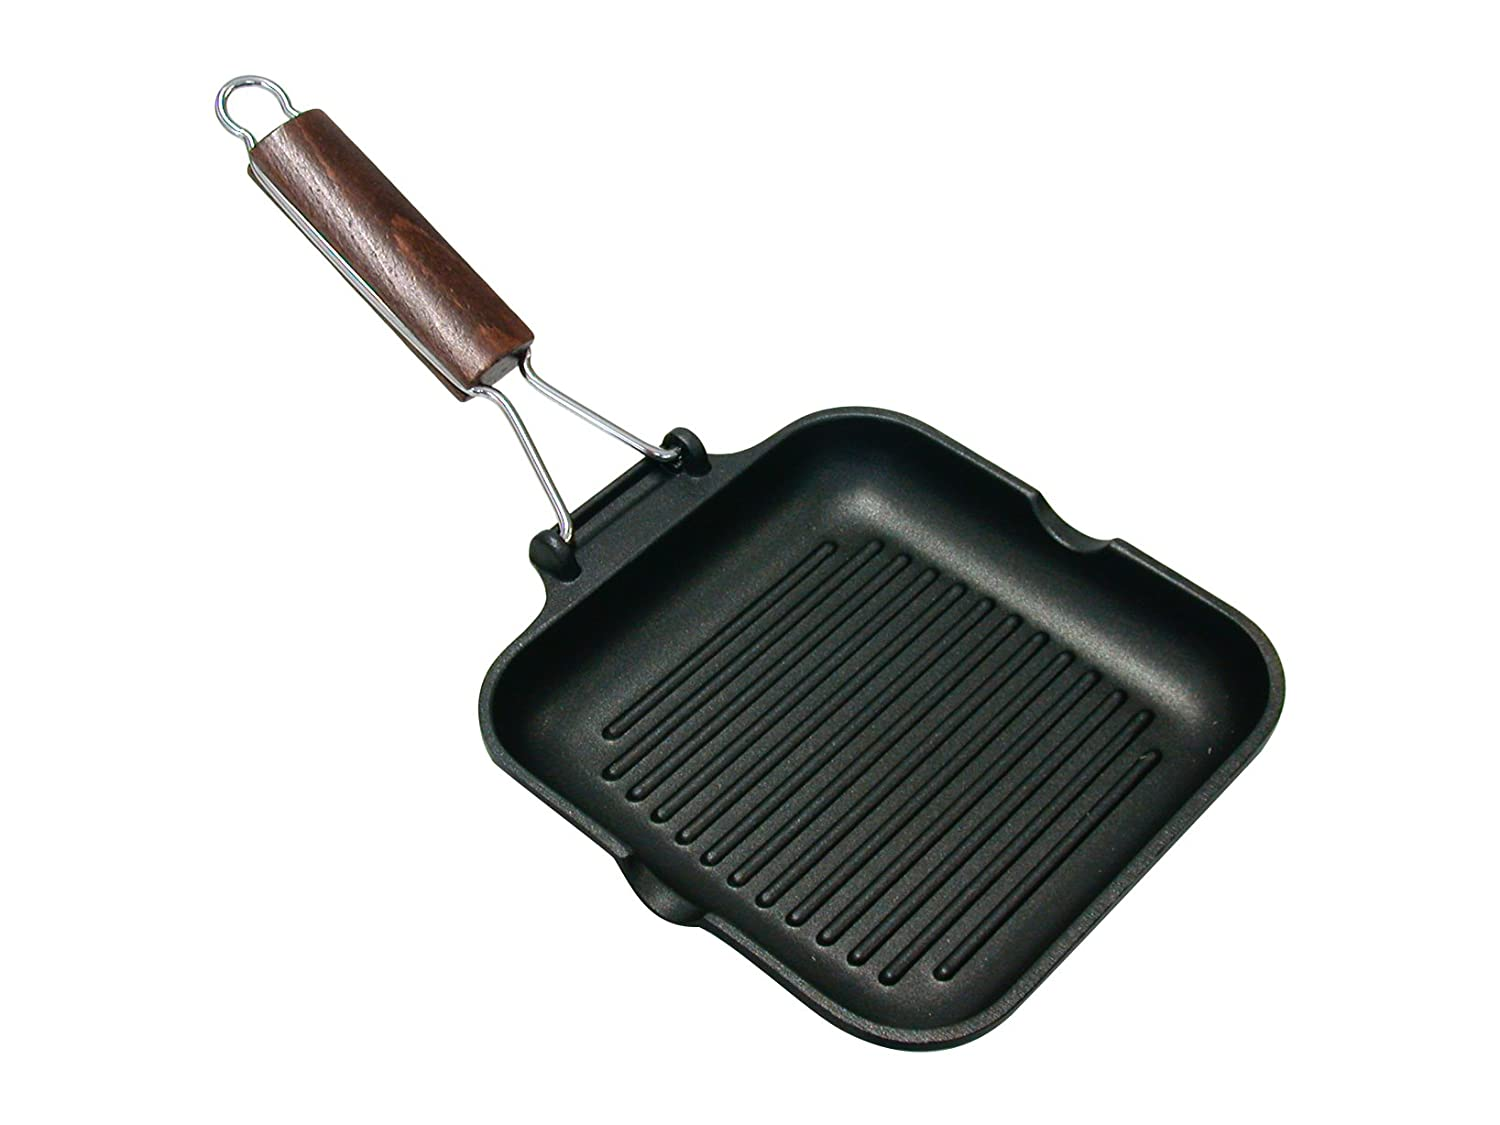 Home Delizia Non-stick Coating Grill Pan with Foldable Handle, Aluminium, Black, 20x20 cm Harbenware